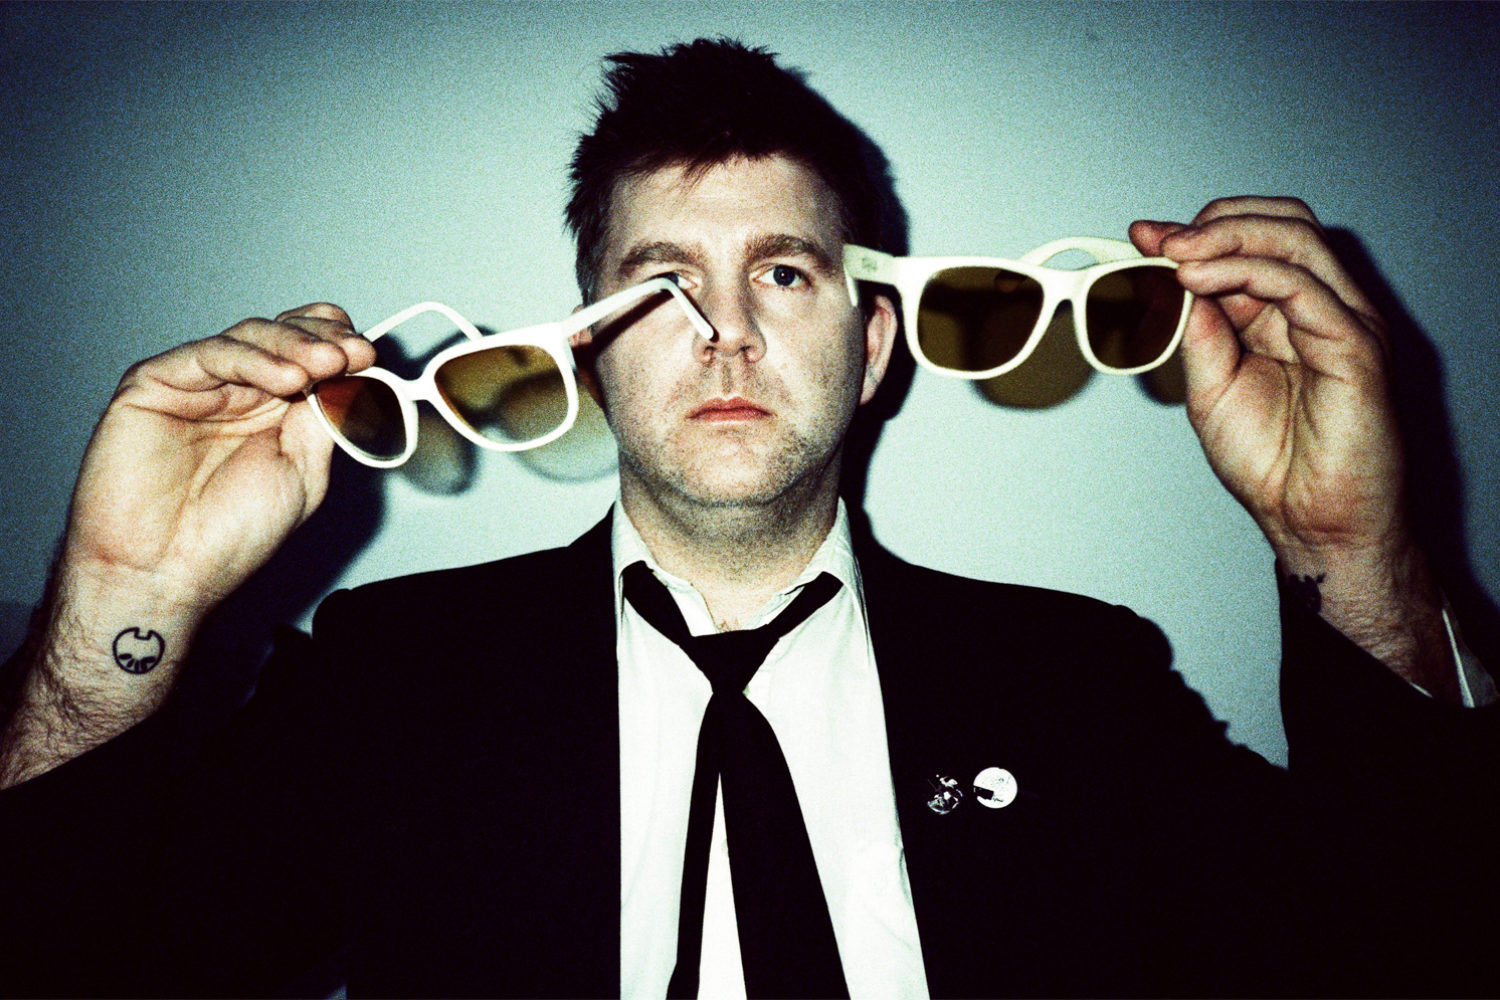 LCD Soundsystem, Radiohead and Red Hot Chili Peppers are reportedly headlining Lollapalooza 2016